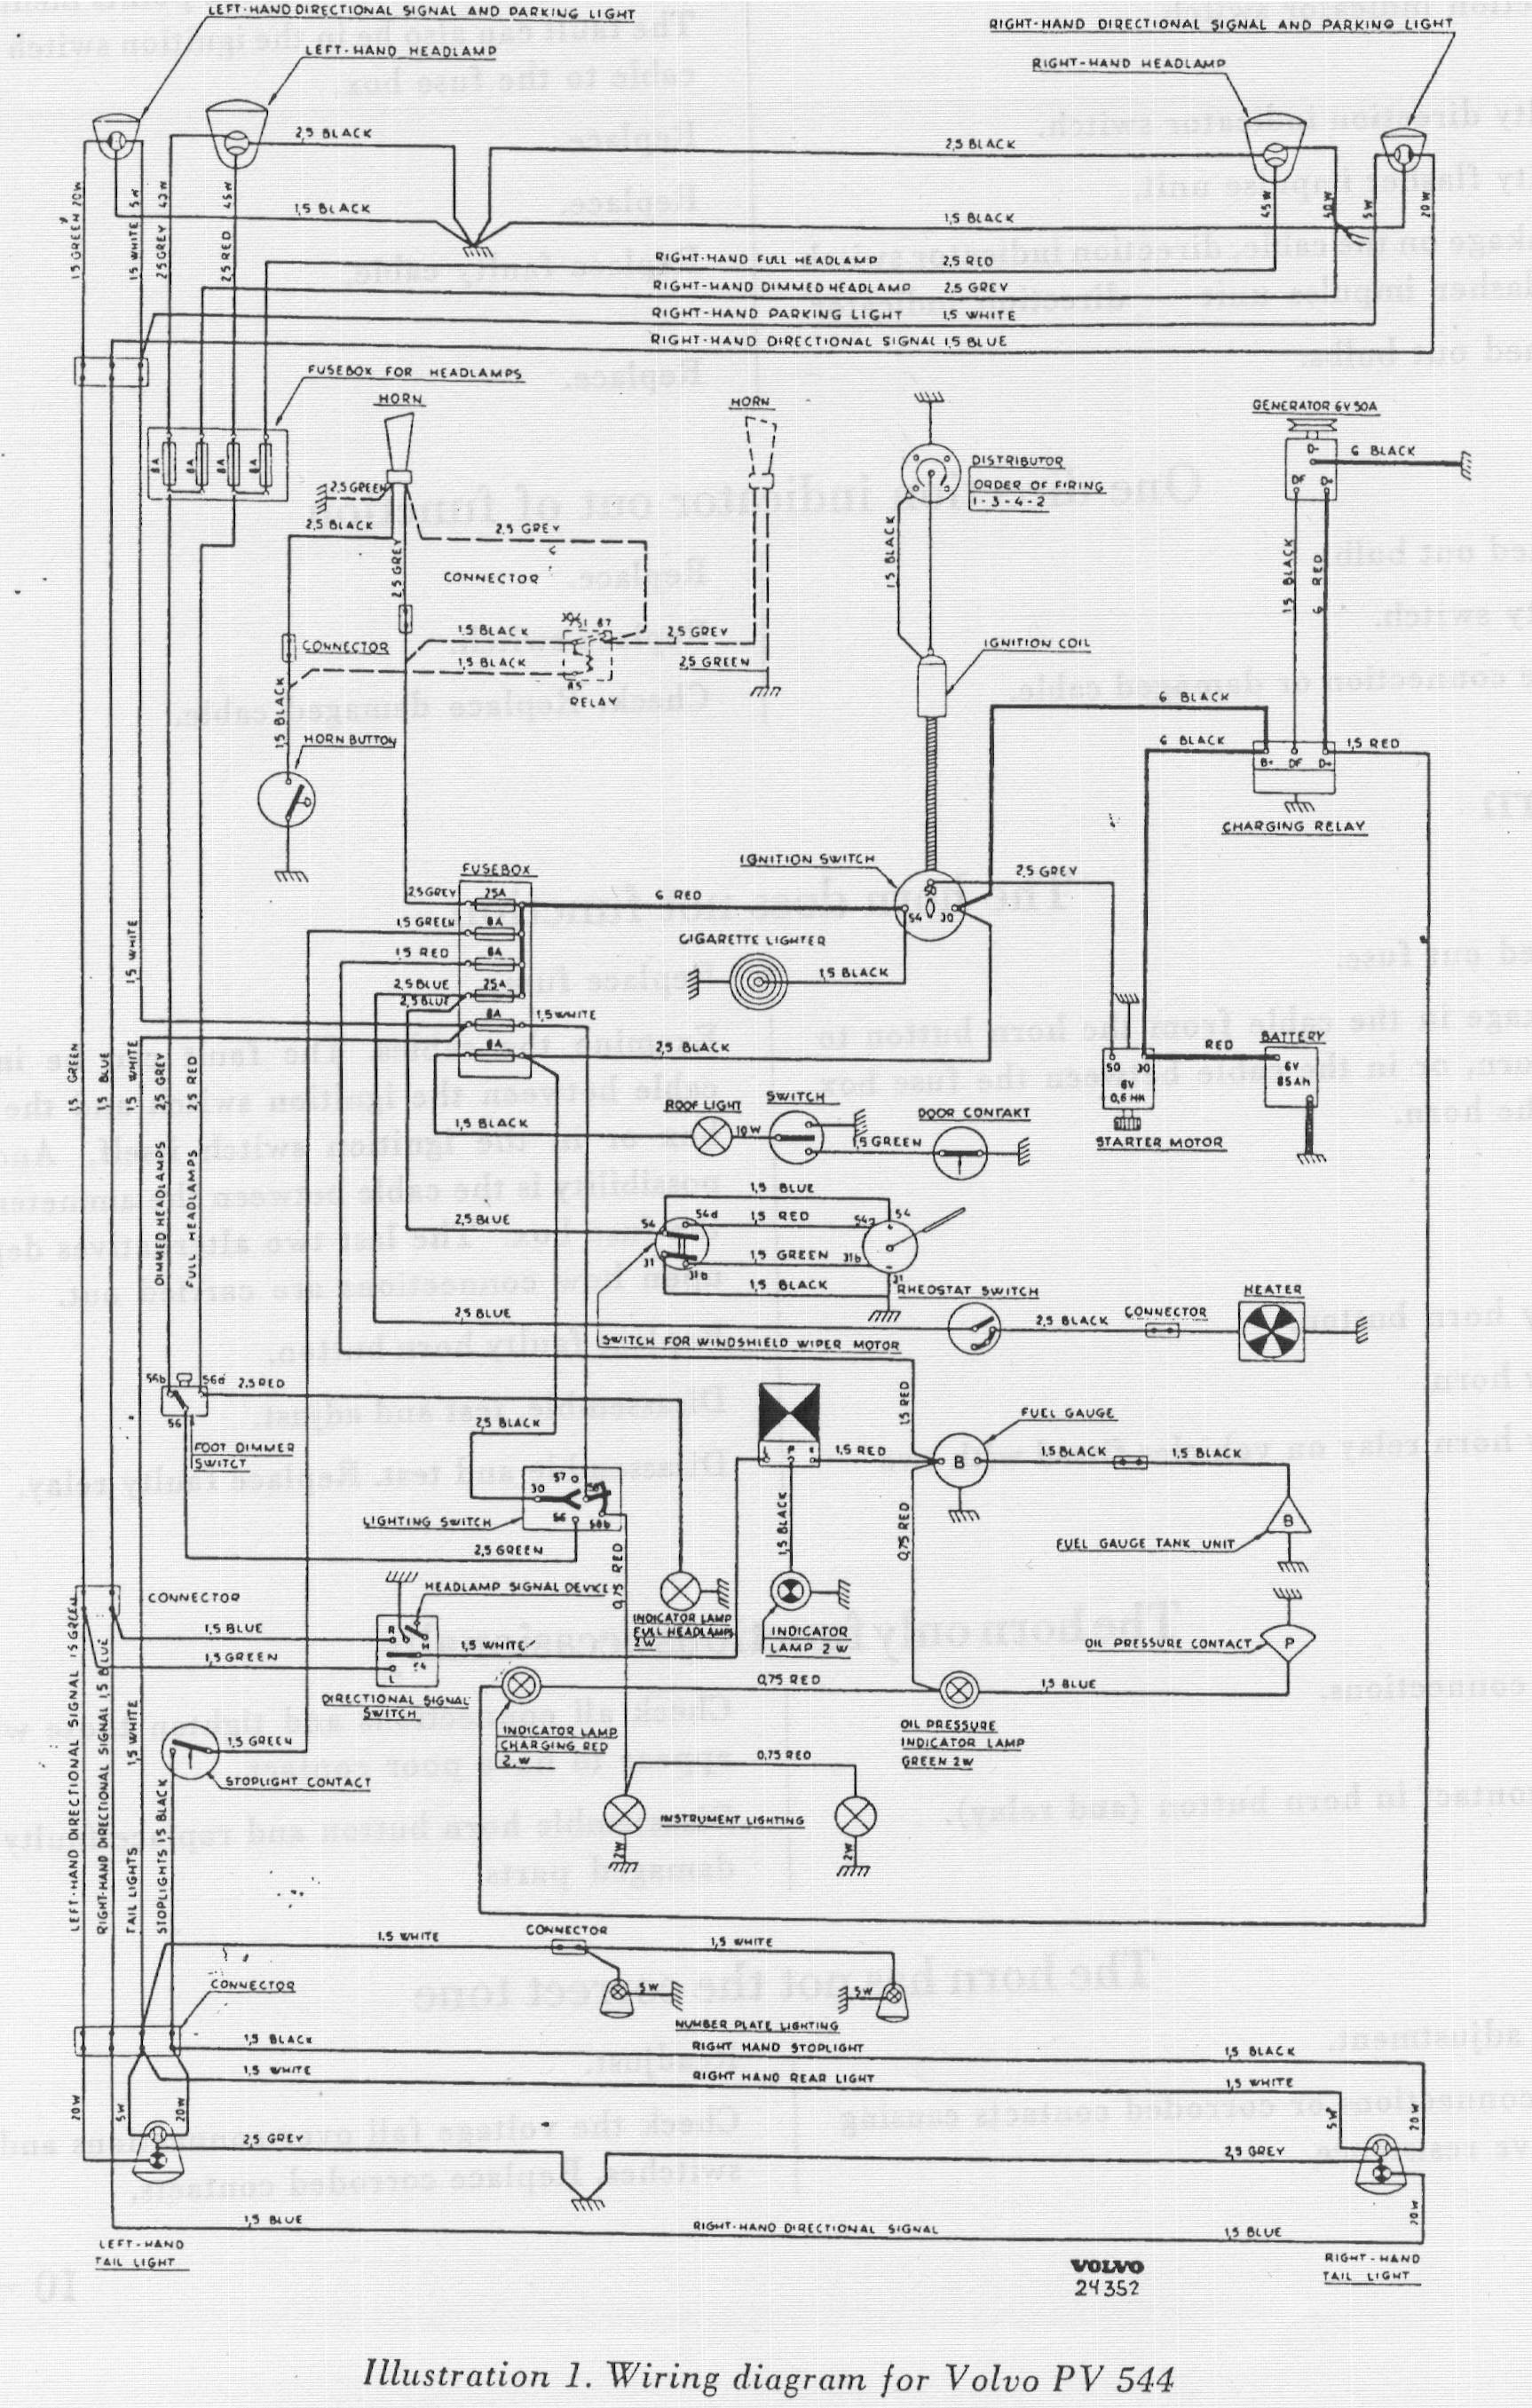 6v Starter Solenoid Wiring Diagram. Parts. Wiring Diagram